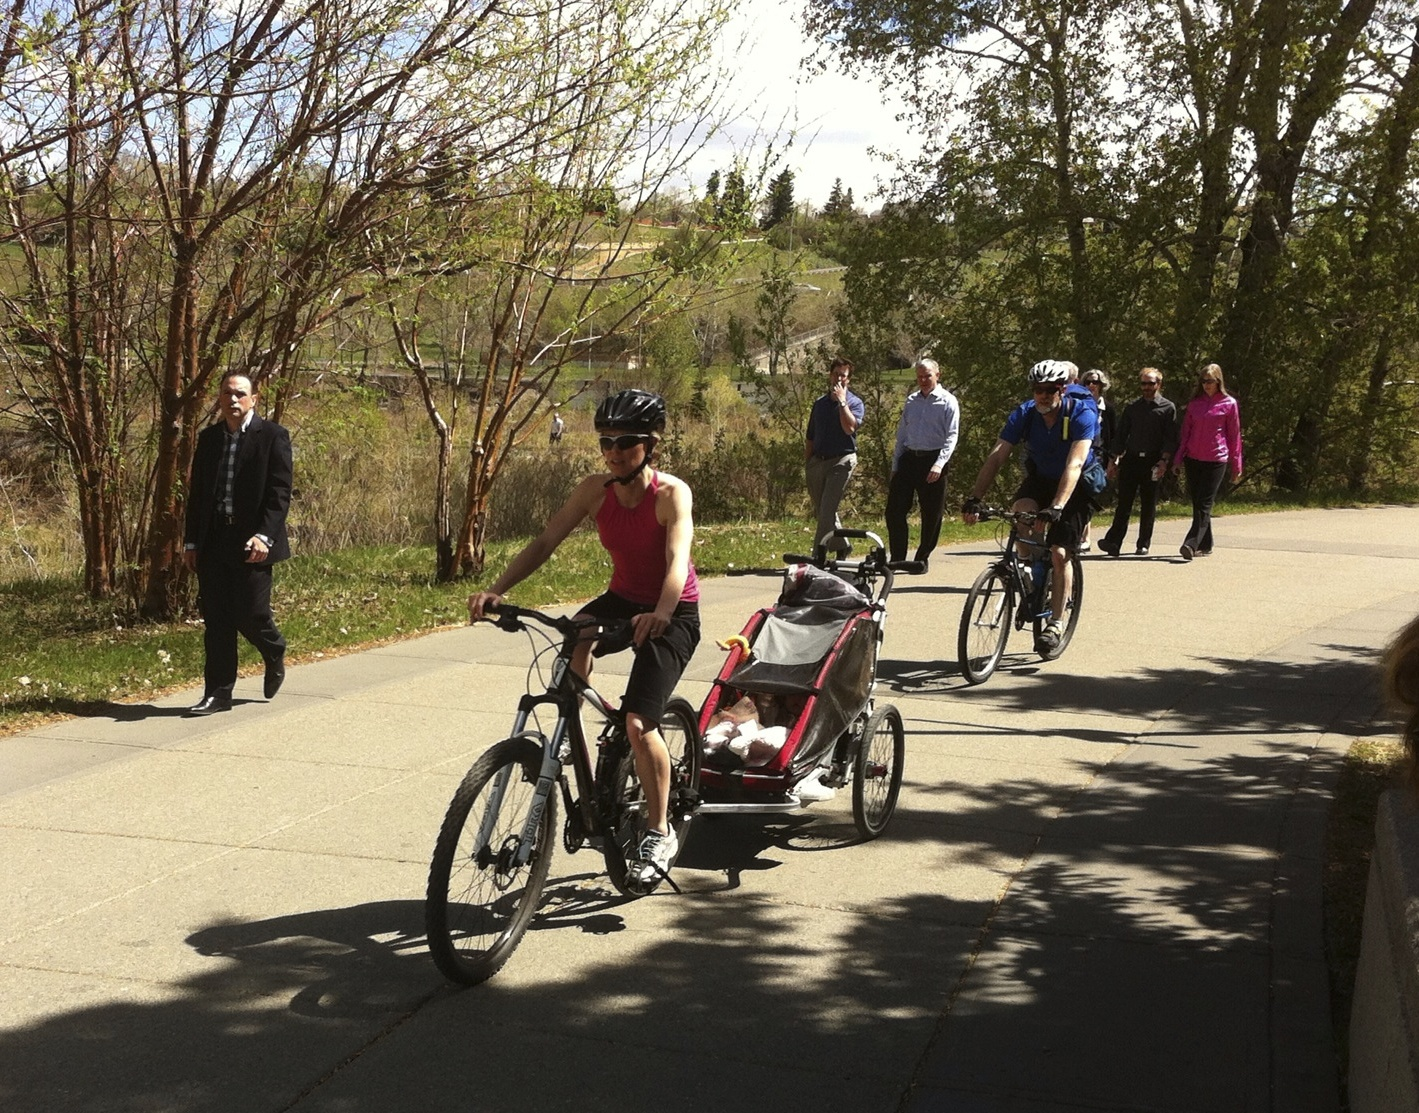 A weekday ride along the Bow River pathway downtown is fun for this family. We need to think about fostering recreational cycling as much as commuters.